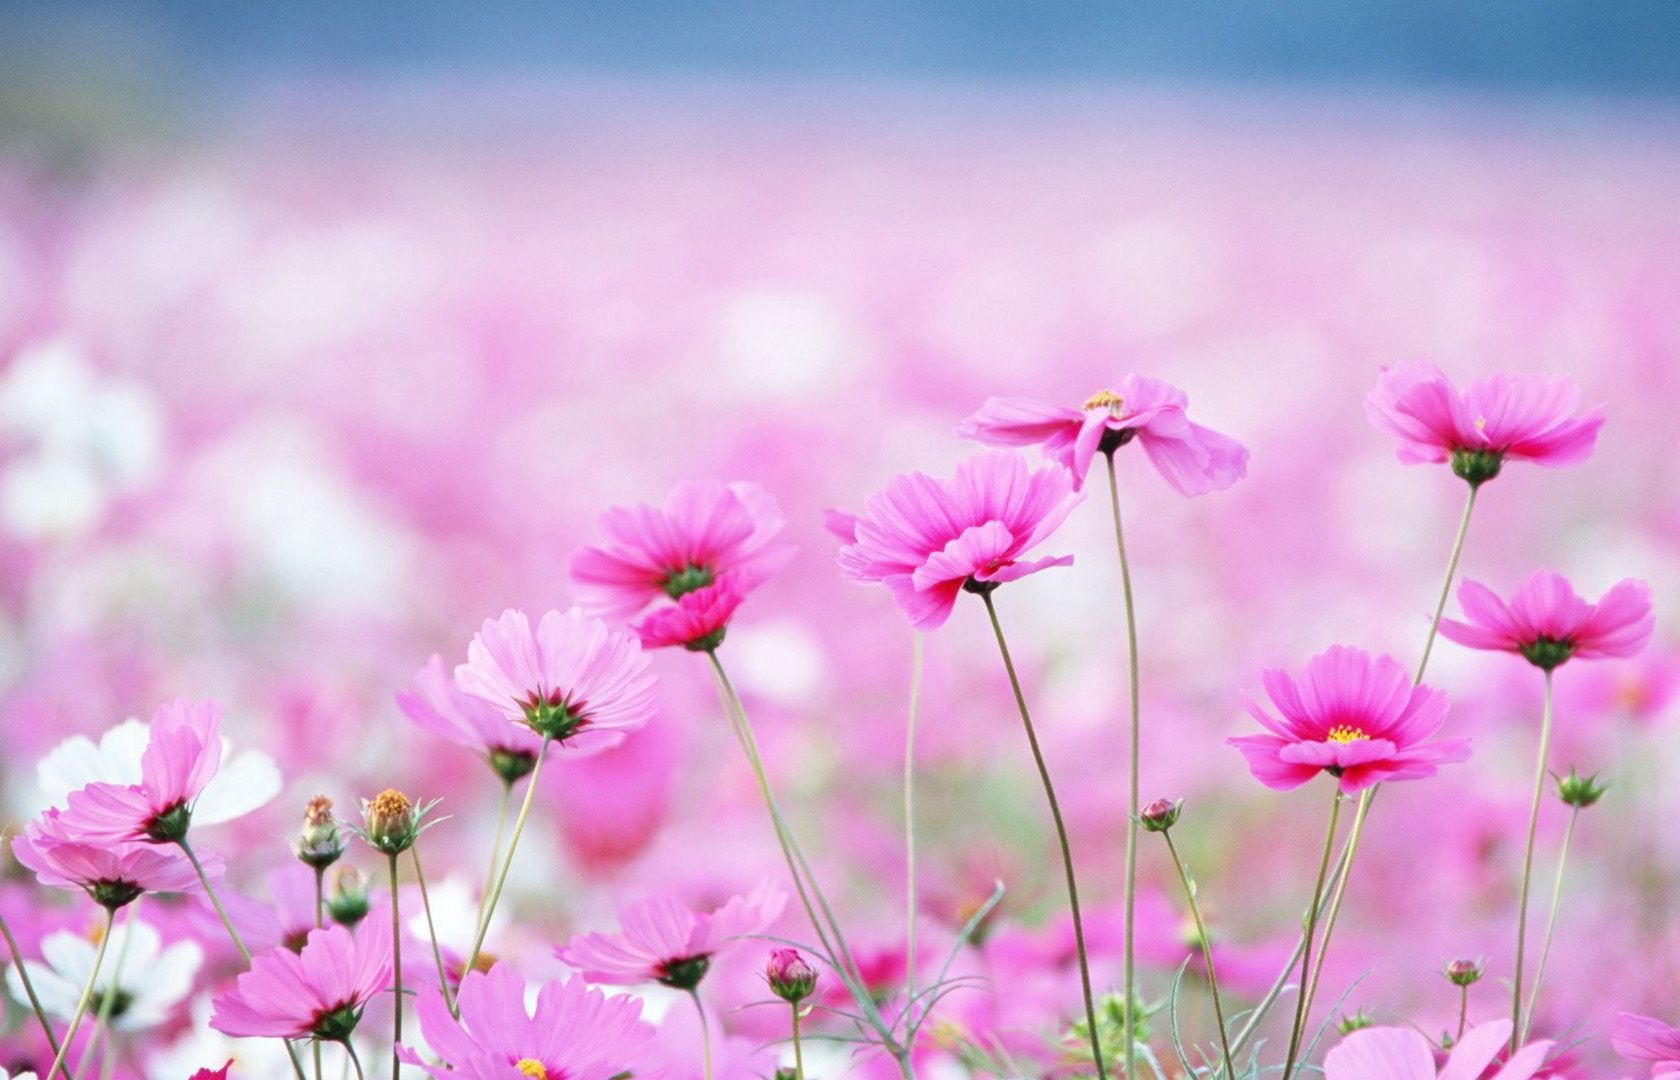 40 BEAUTIFUL FLOWER WALLPAPERS FREE TO DOWNLOAD   flowers photography   Beautiful flowers ...